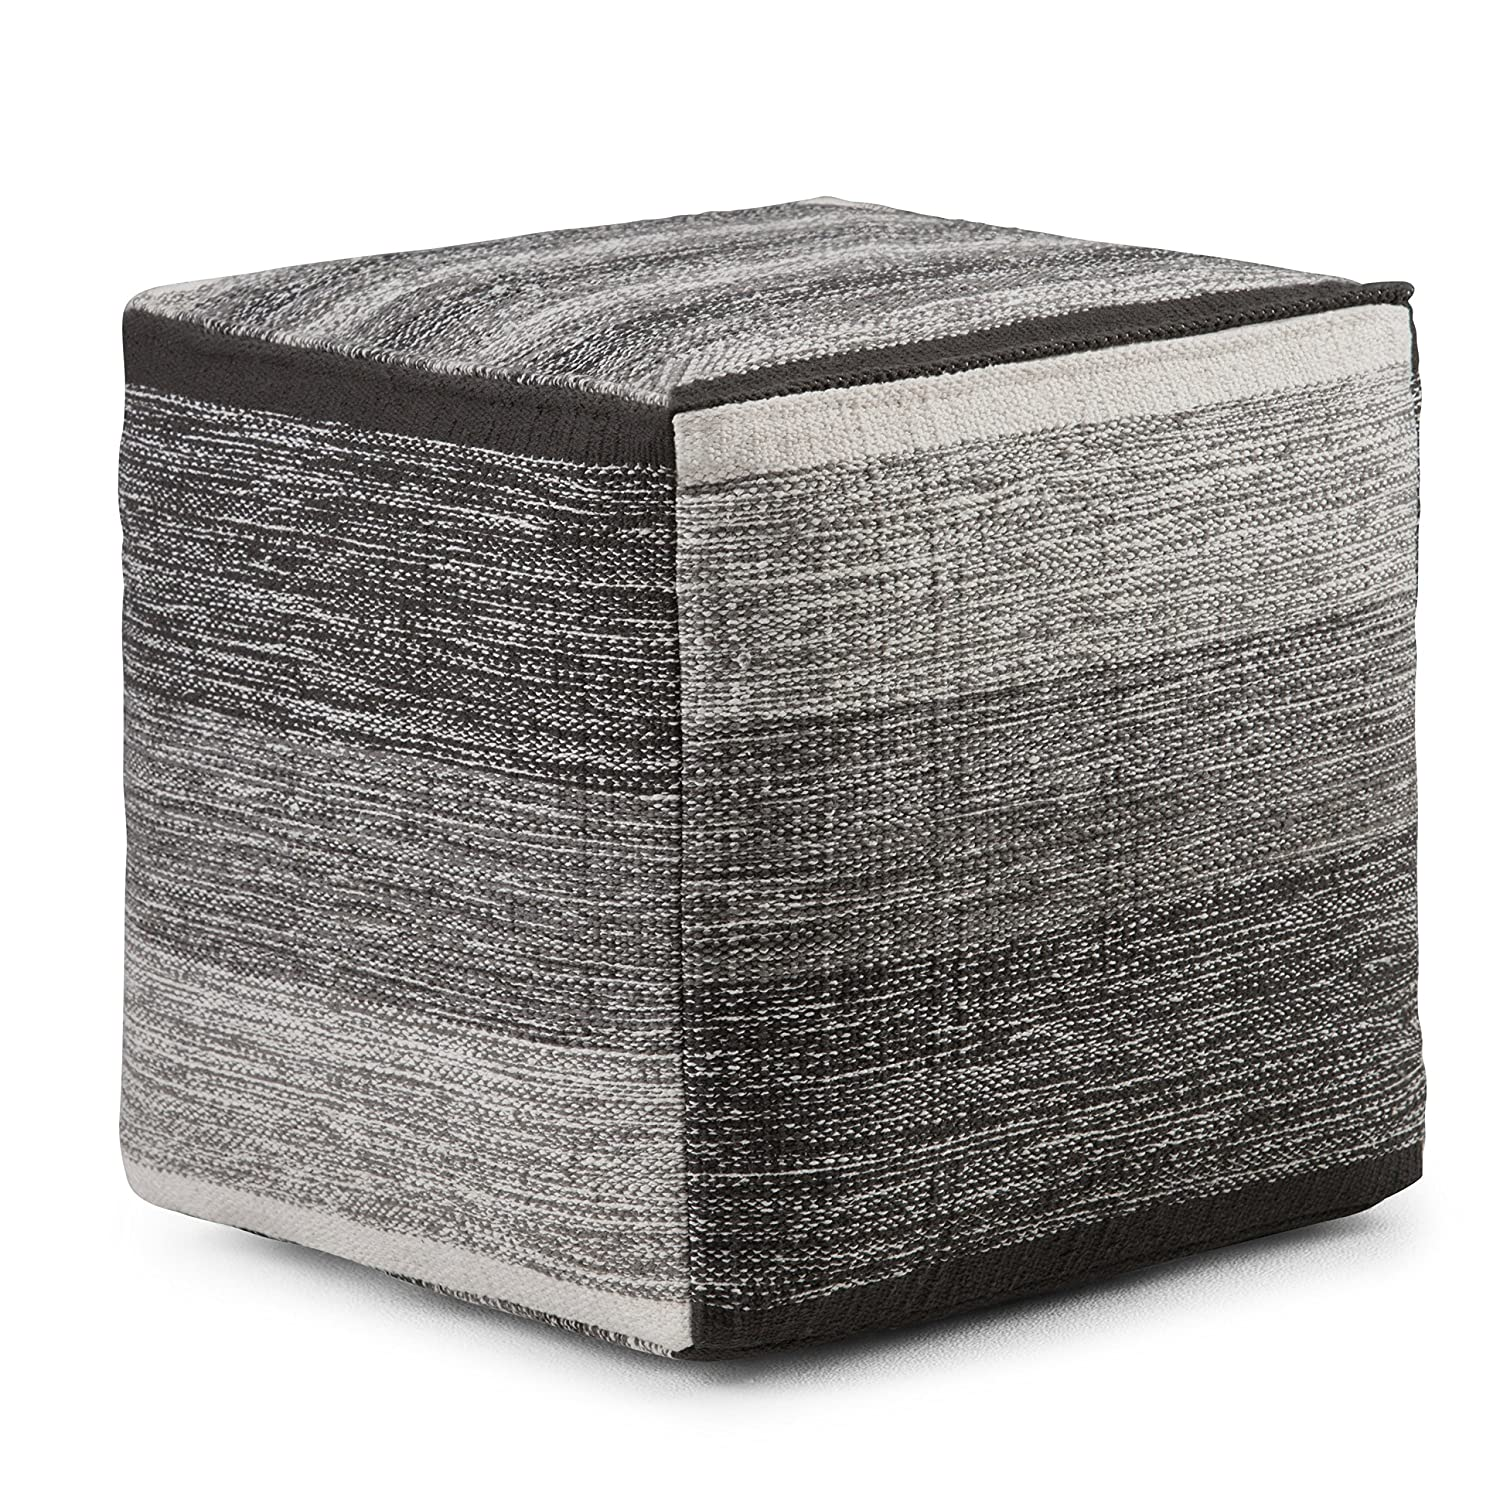 Simpli Home Naya Cube Pouf, Patterned Grey Melange Ltd. AXCPF-05